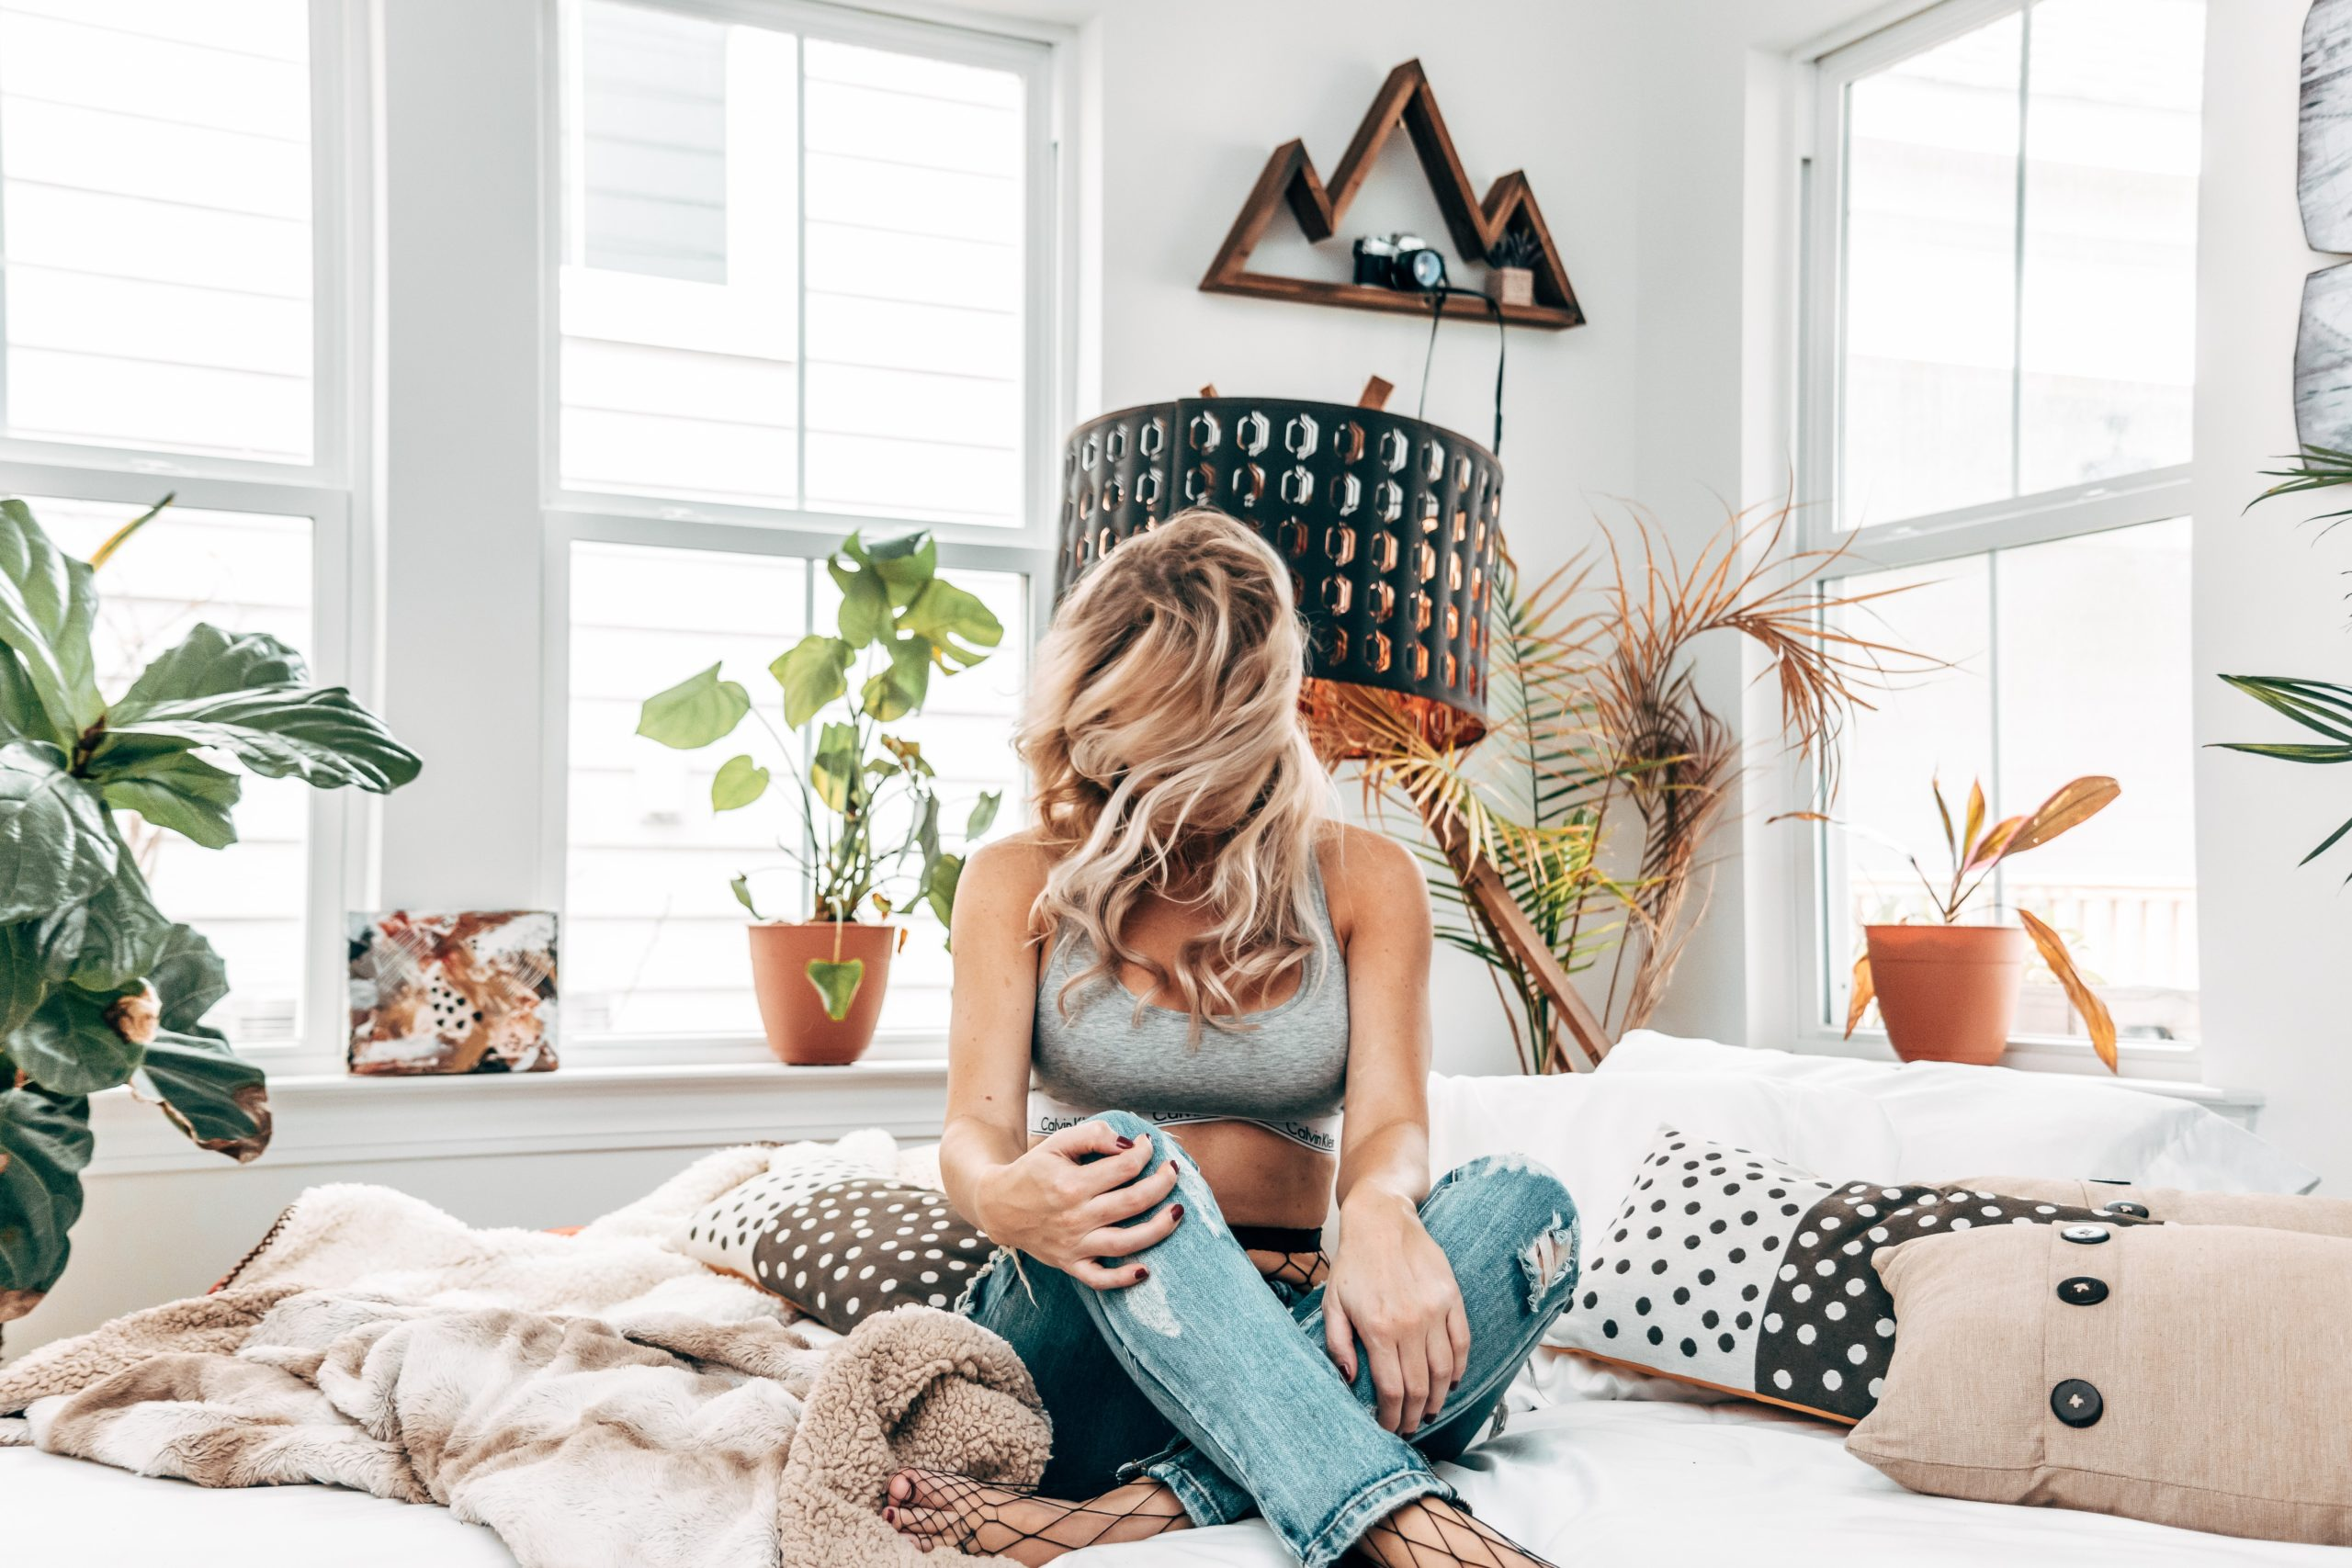 Creating Instagram Content At Home